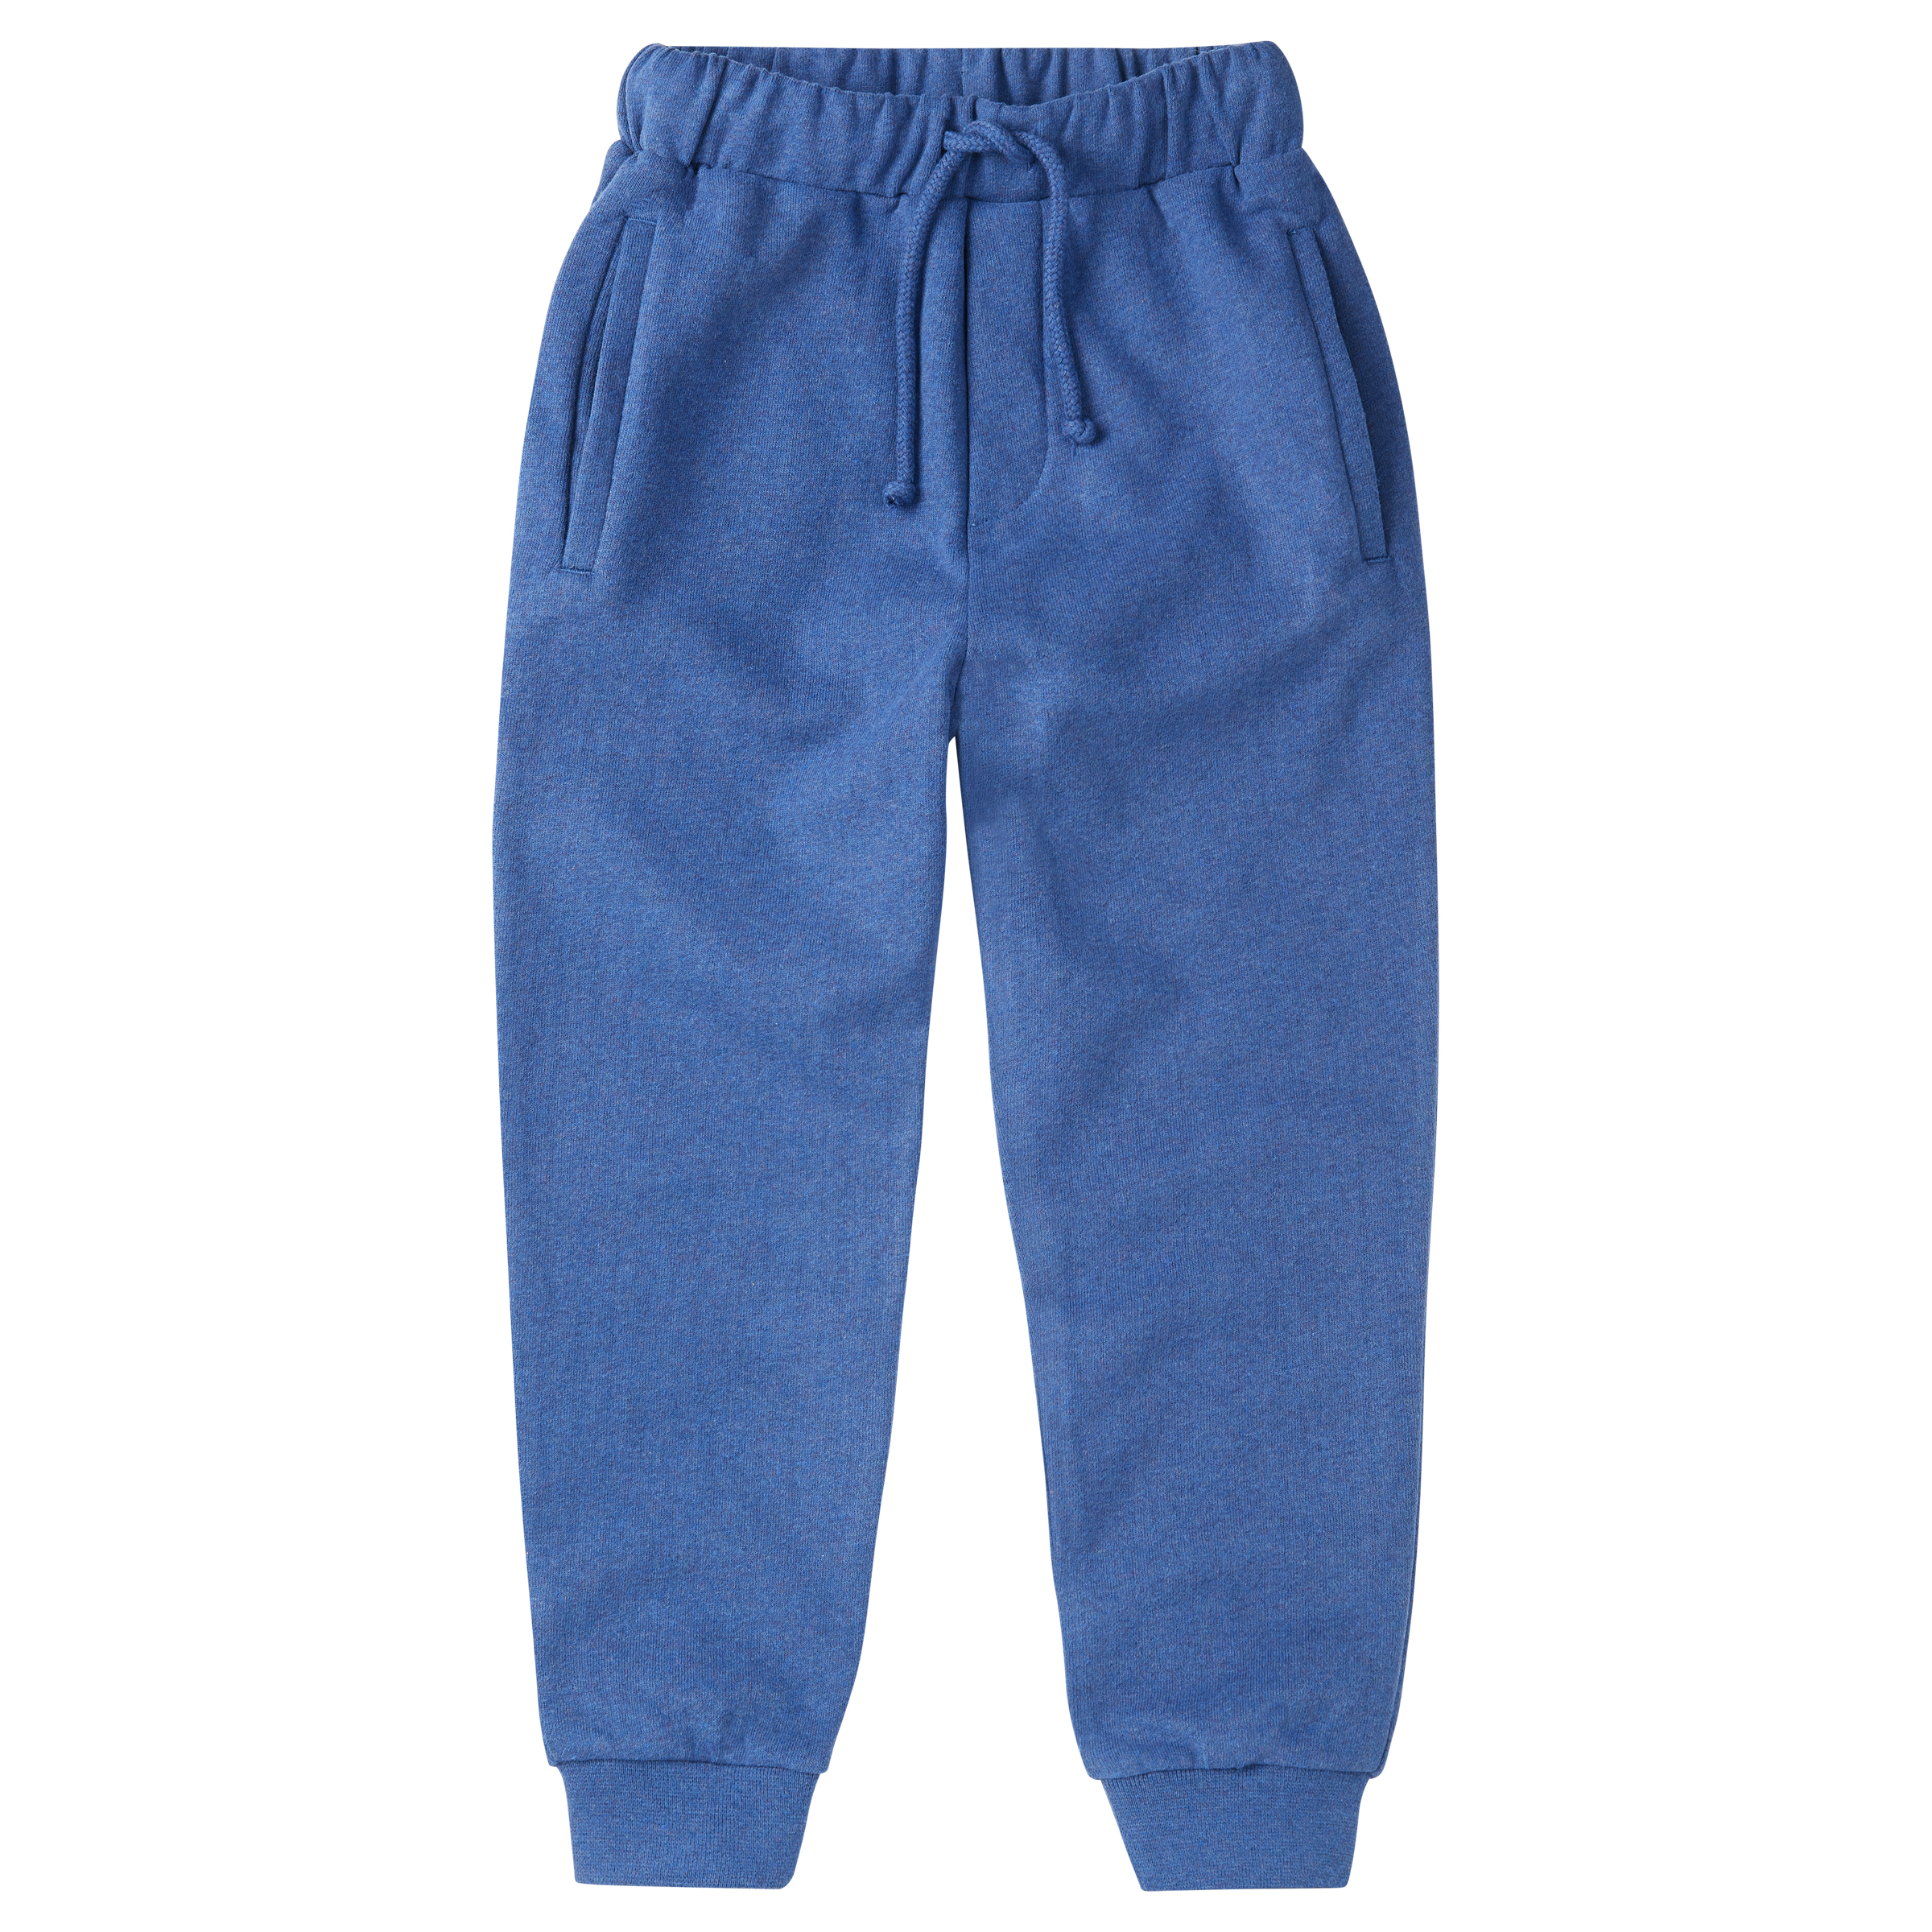 Waste Picker - sweatpants from Be Kind